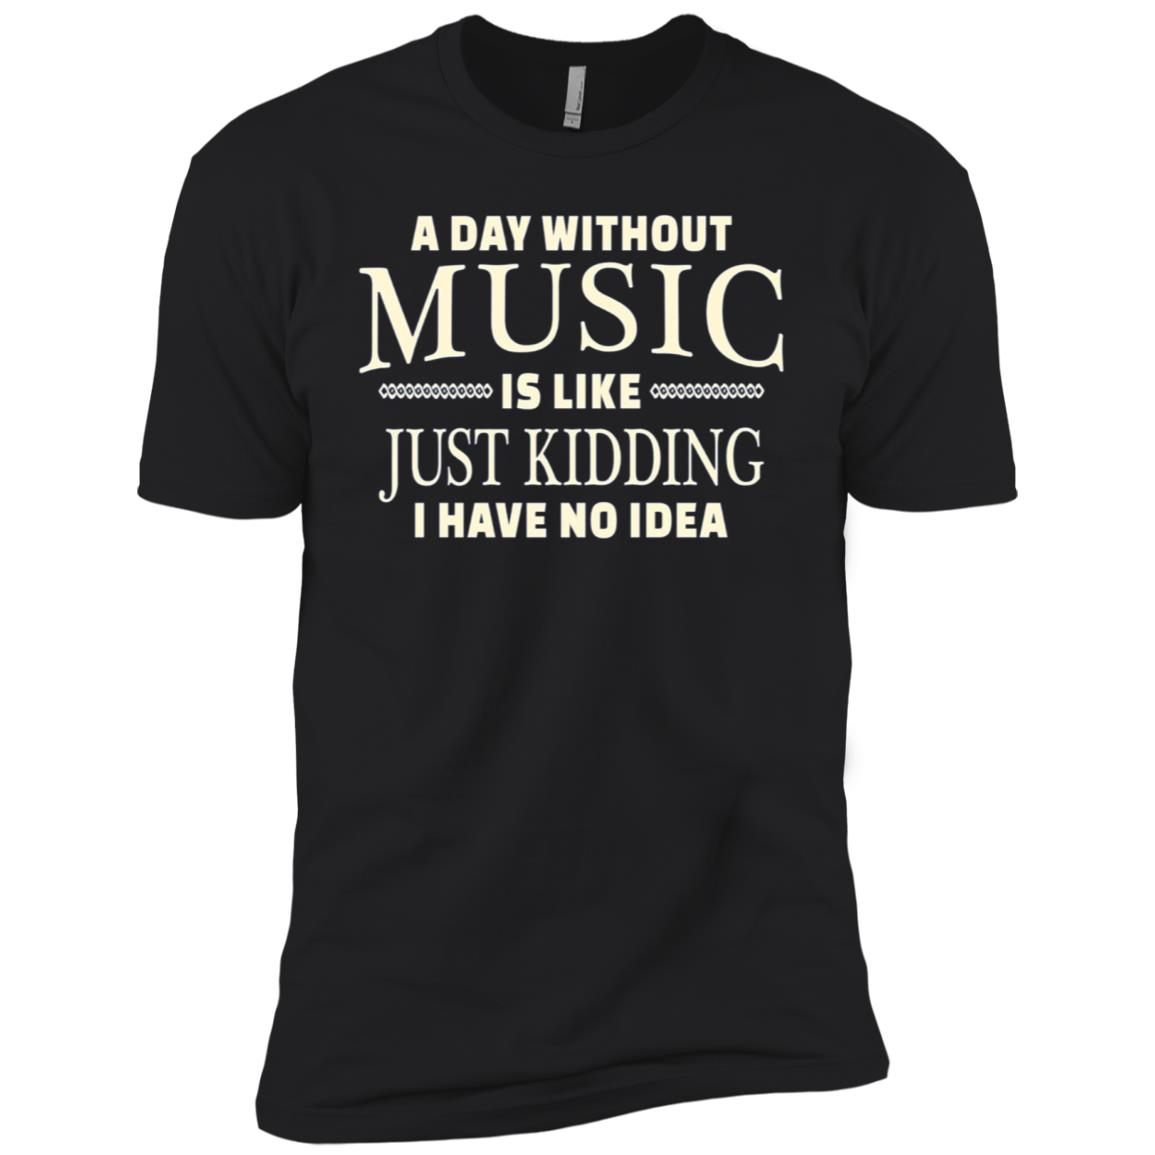 Without Music Funny Music Lover Tee Teen Girls Boys Men Short Sleeve T-Shirt